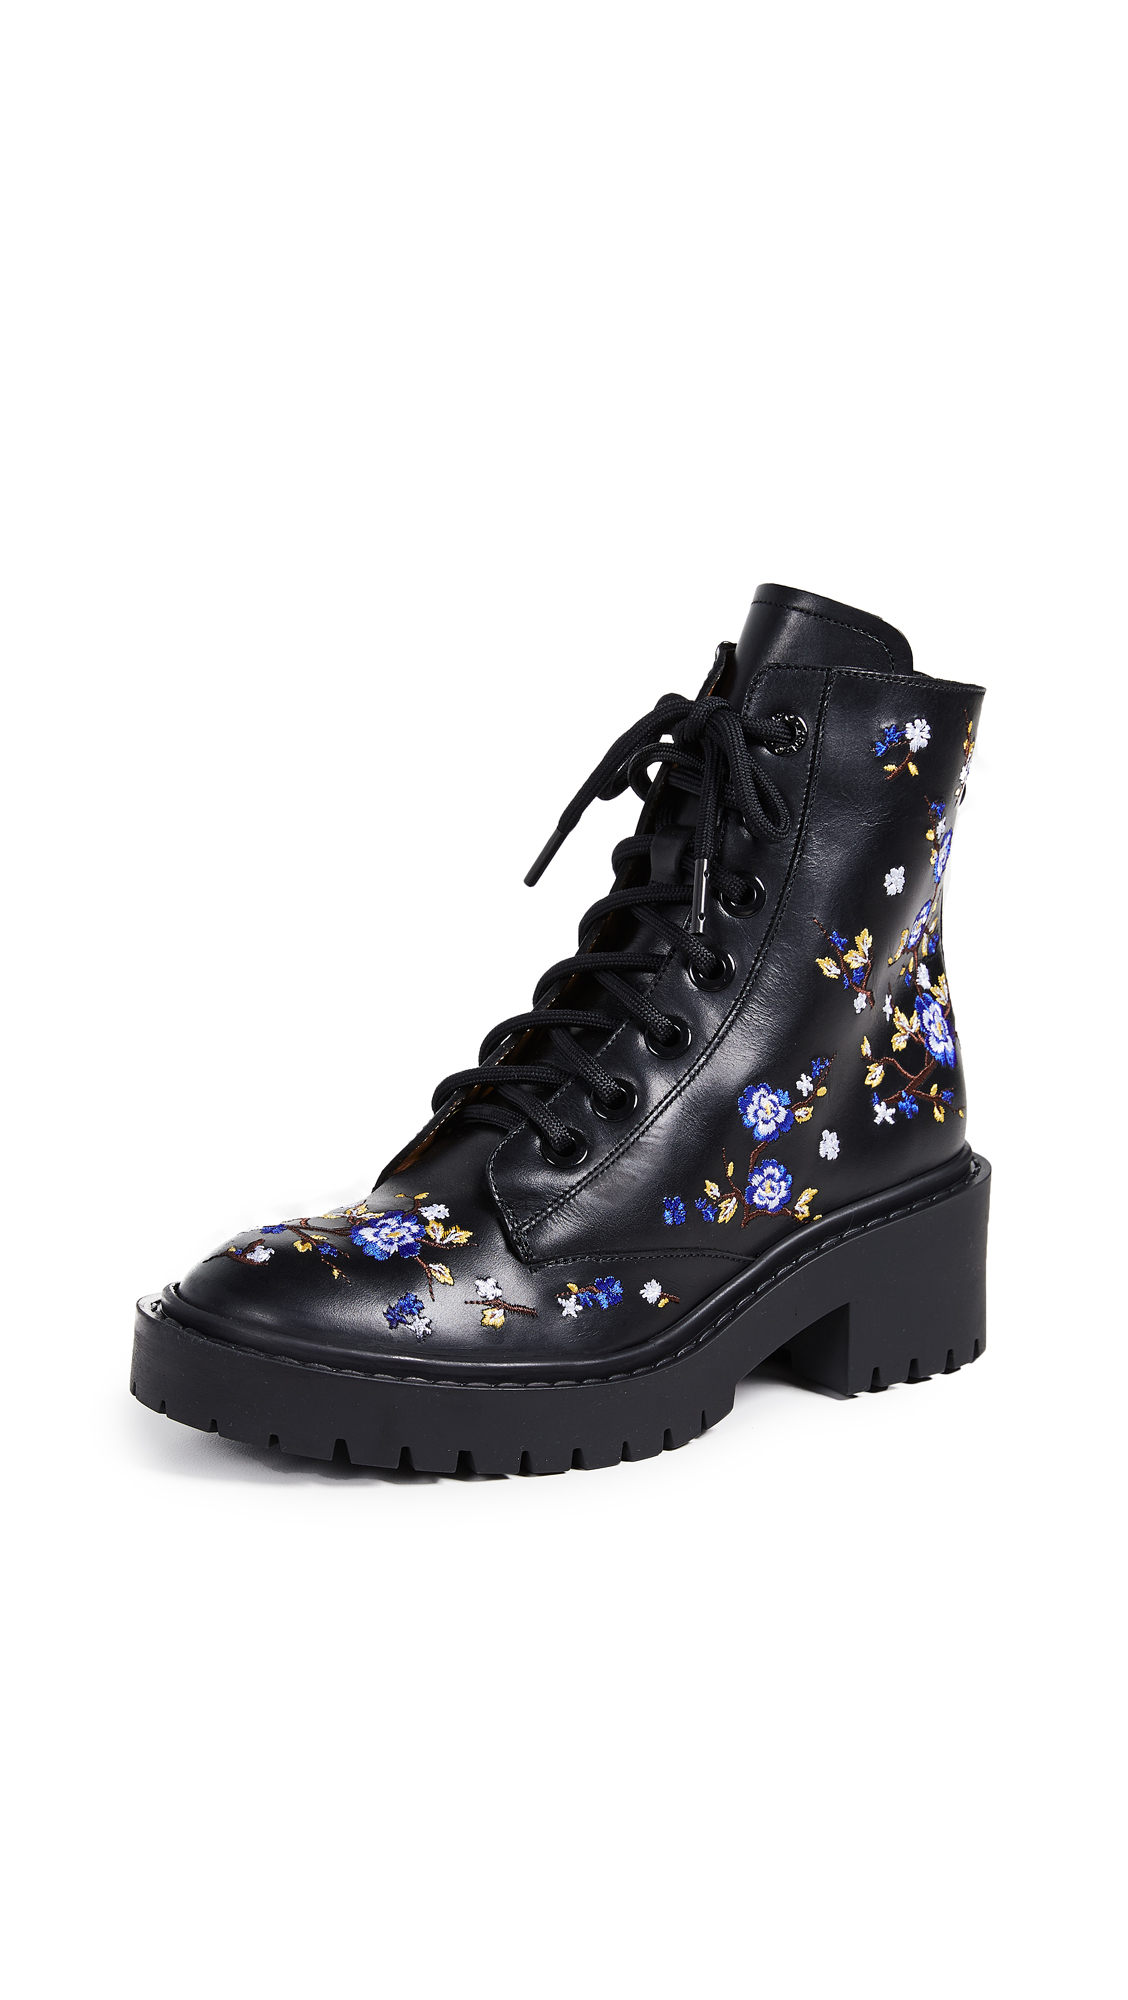 KENZO Pike Embroidered Boots - Black